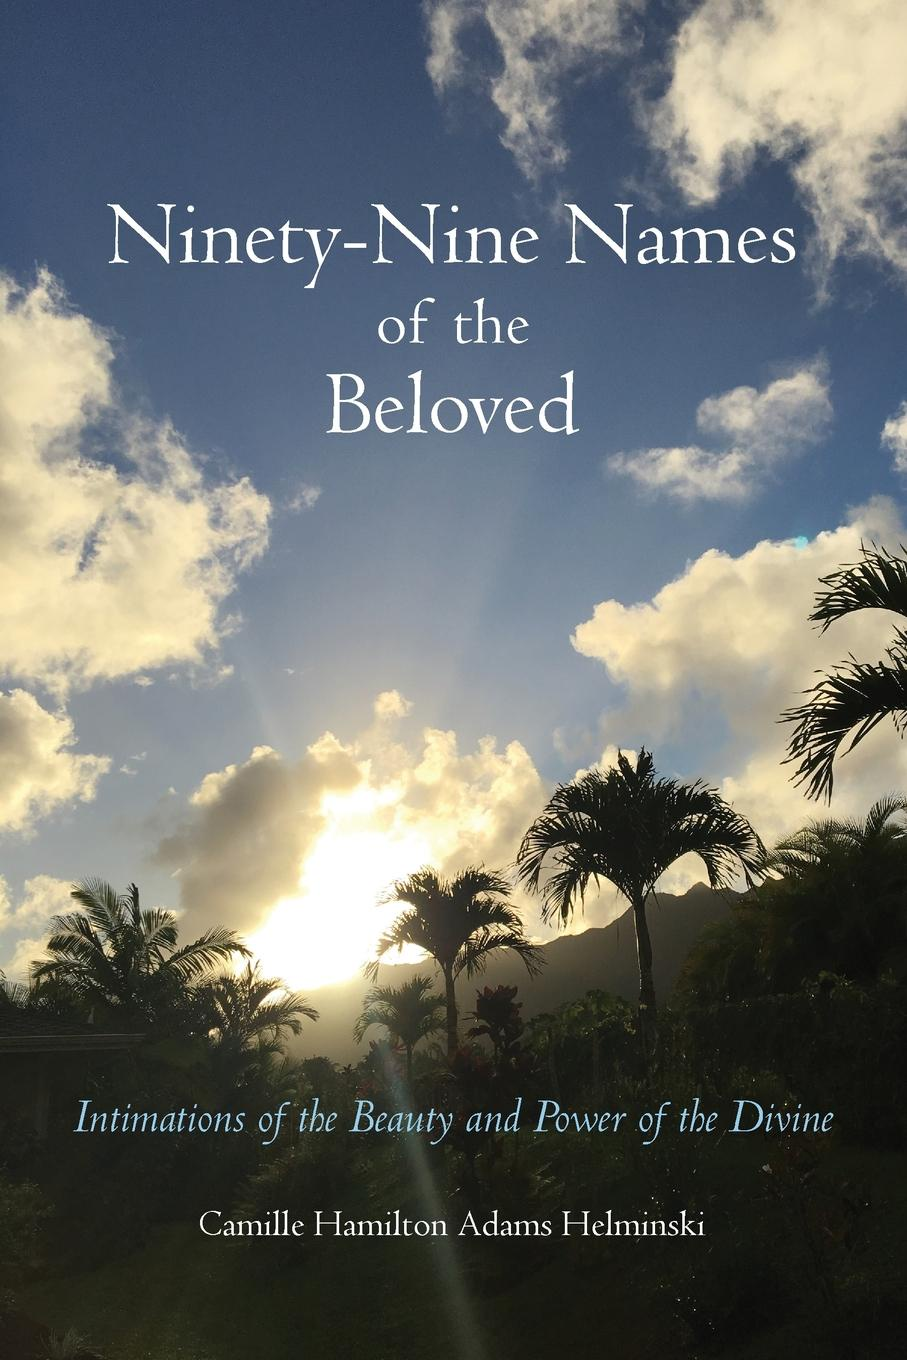 лучшая цена Camille Hamilton Adams Helminski Ninety-Nine Names of the Beloved. Intimations of the Beauty and Power of the Divine